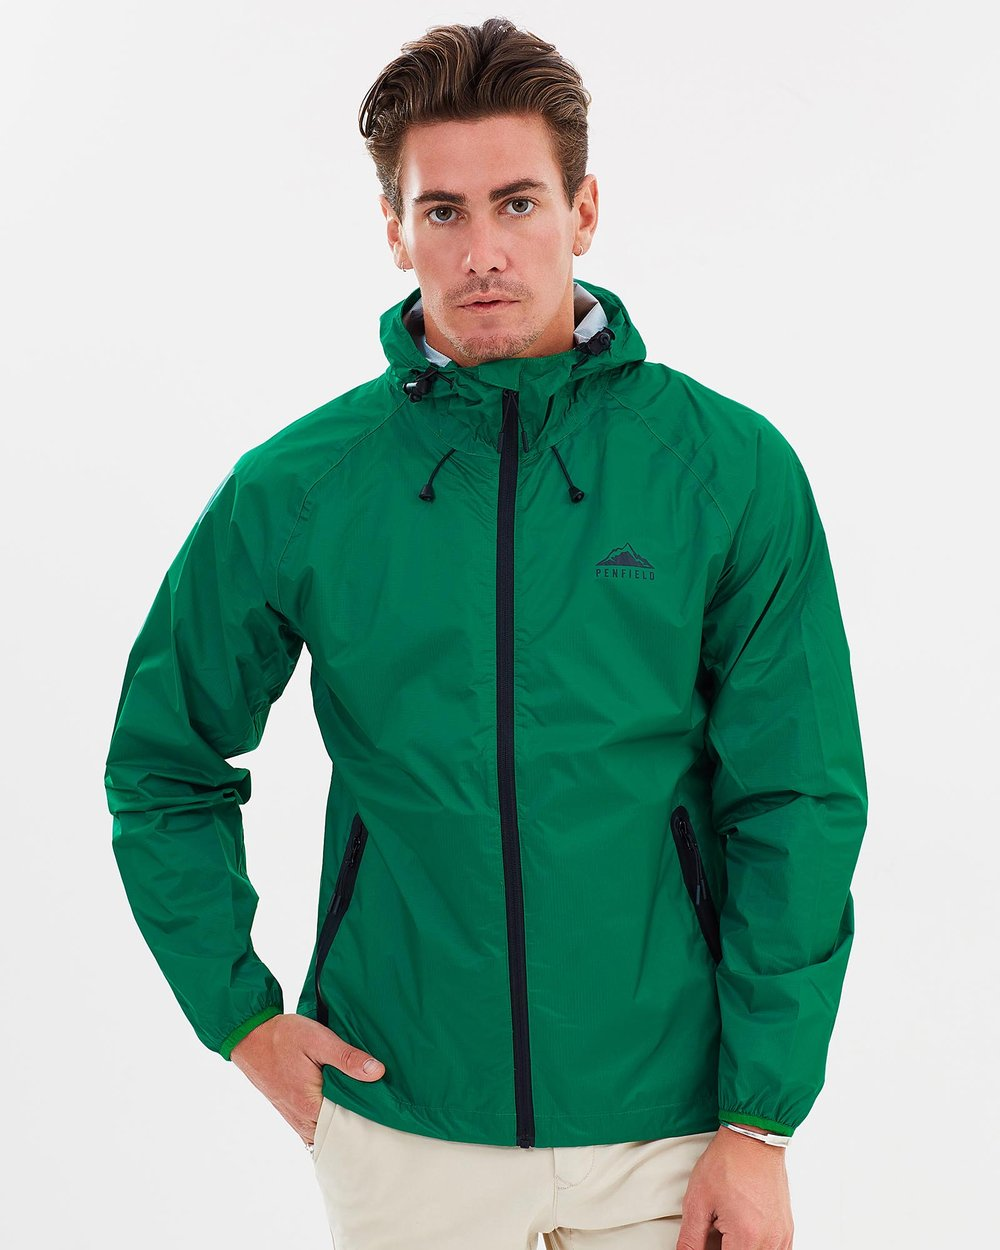 b4db1d4c2 Travelshell Jacket by Penfield Online | THE ICONIC | Australia